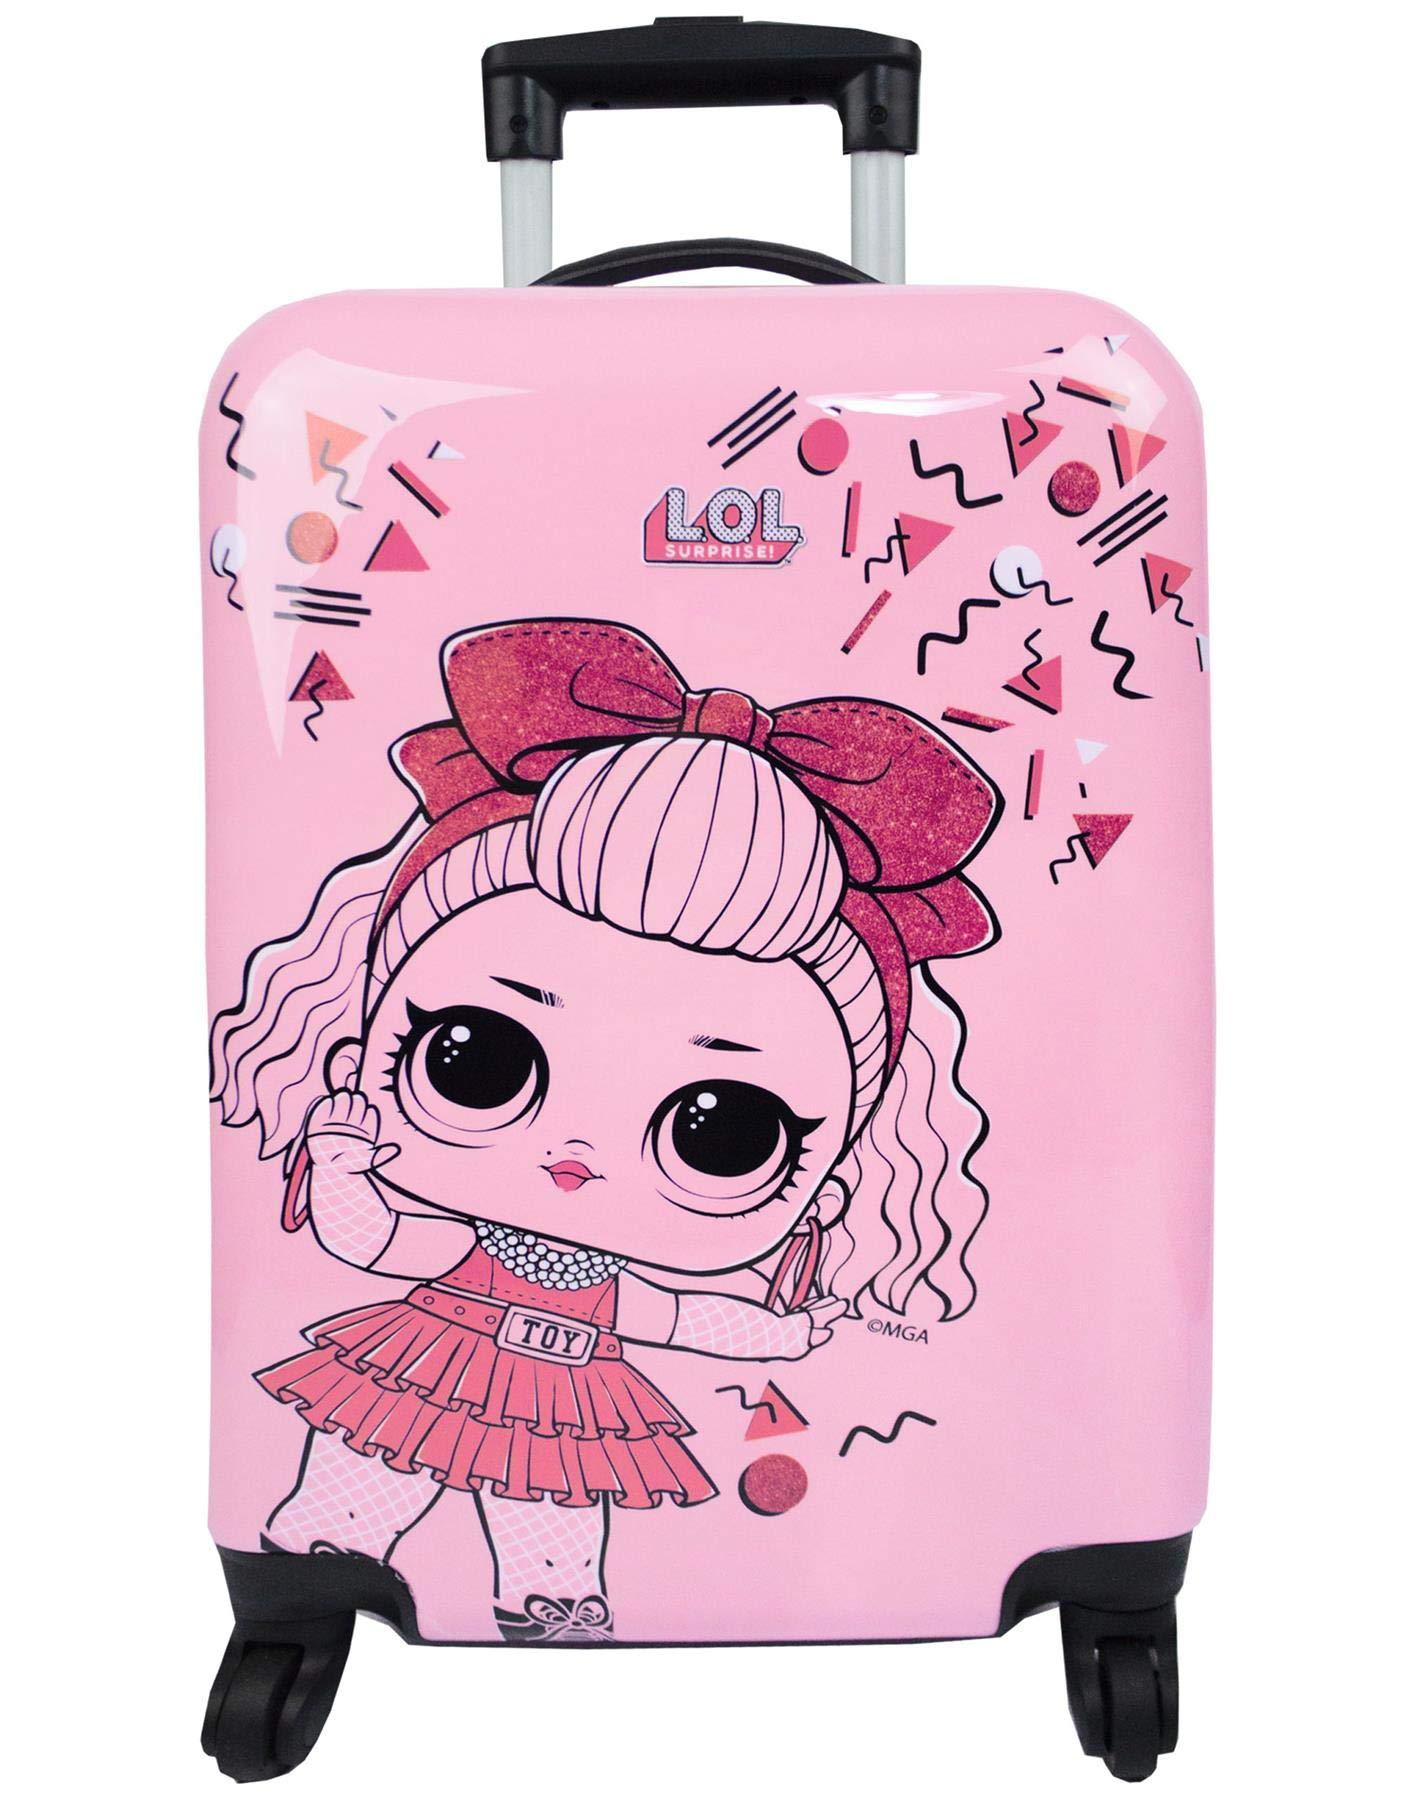 LOL-berraschung-Kinder-Mdchen-Rosa-Hard-Cover-Carry-on-Trolley-Koffer-Gepck